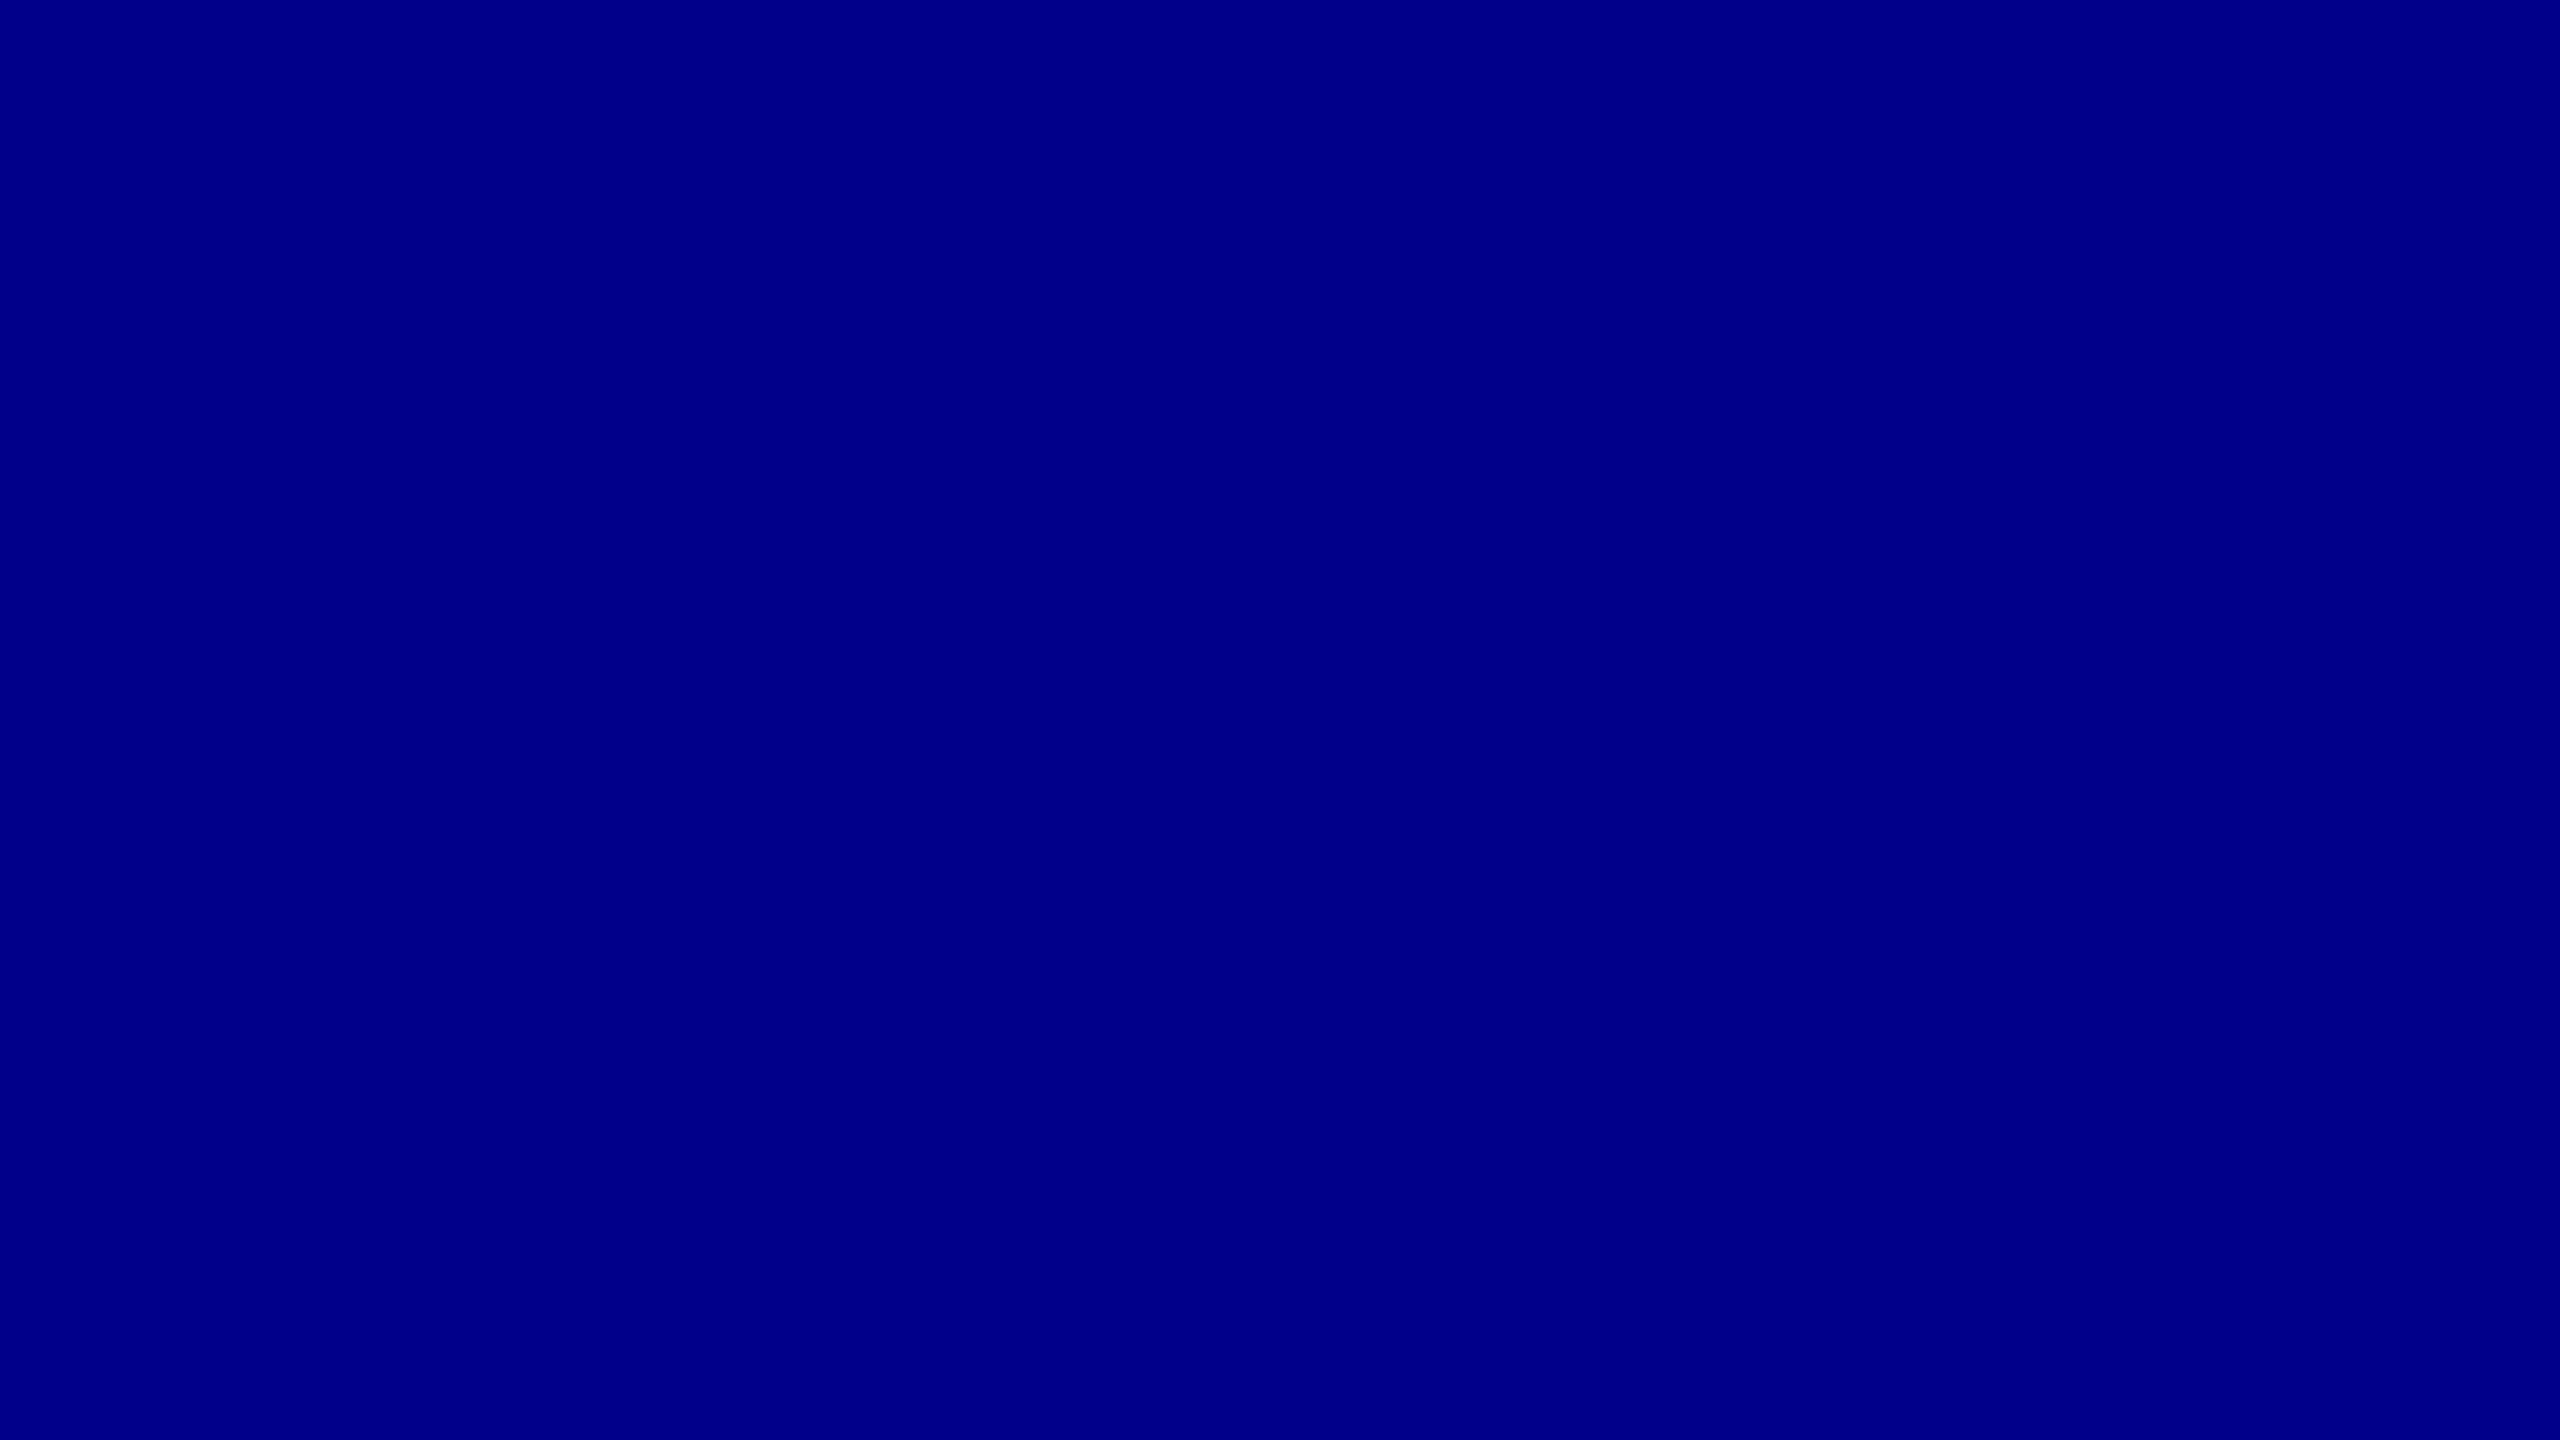 Dark Solid Blue Background Hd Wallpapers Pictures